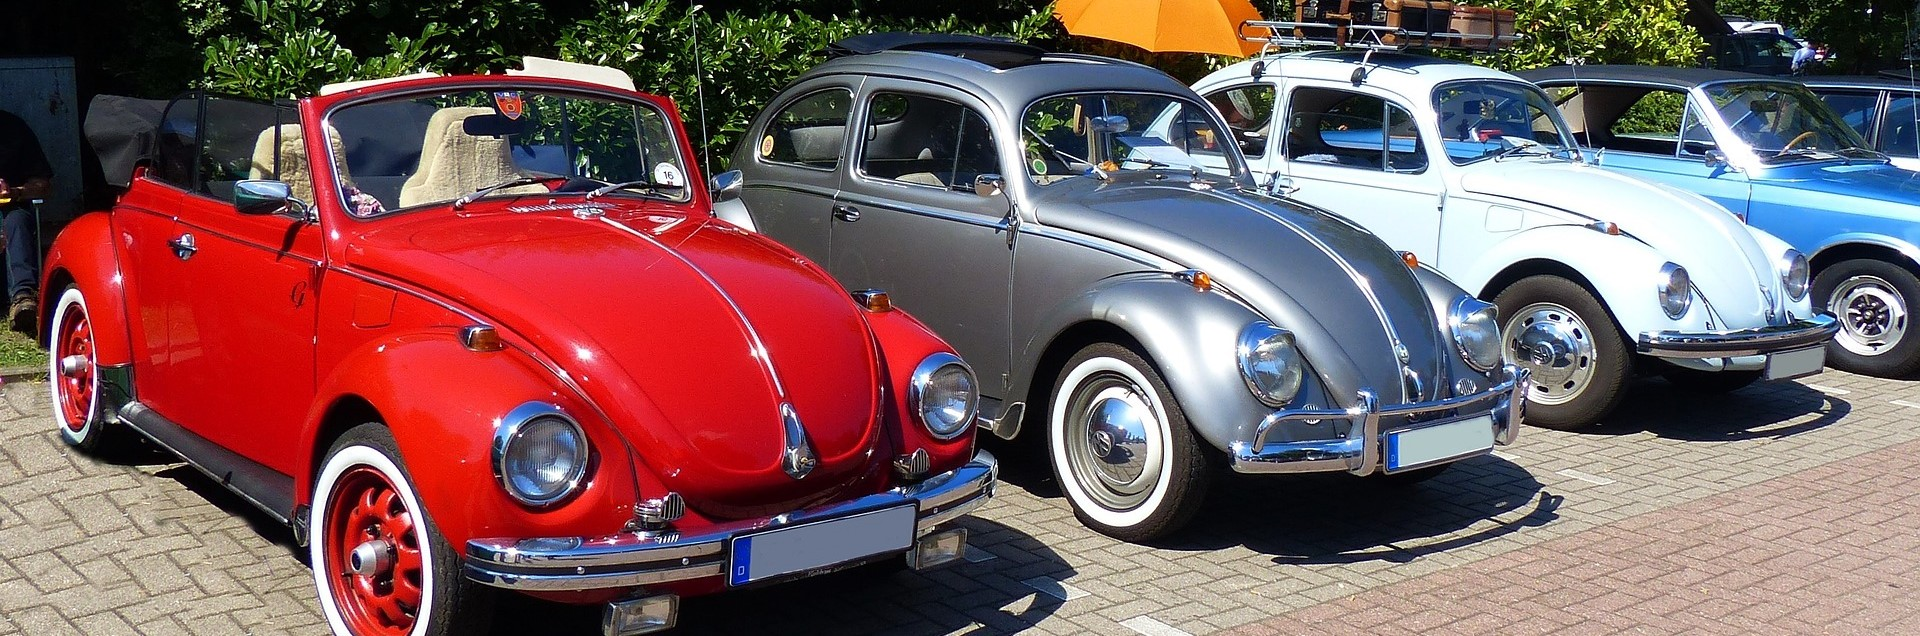 Oldtimer Beetles in Columbus, Georgia | Breast Cancer Car Donations